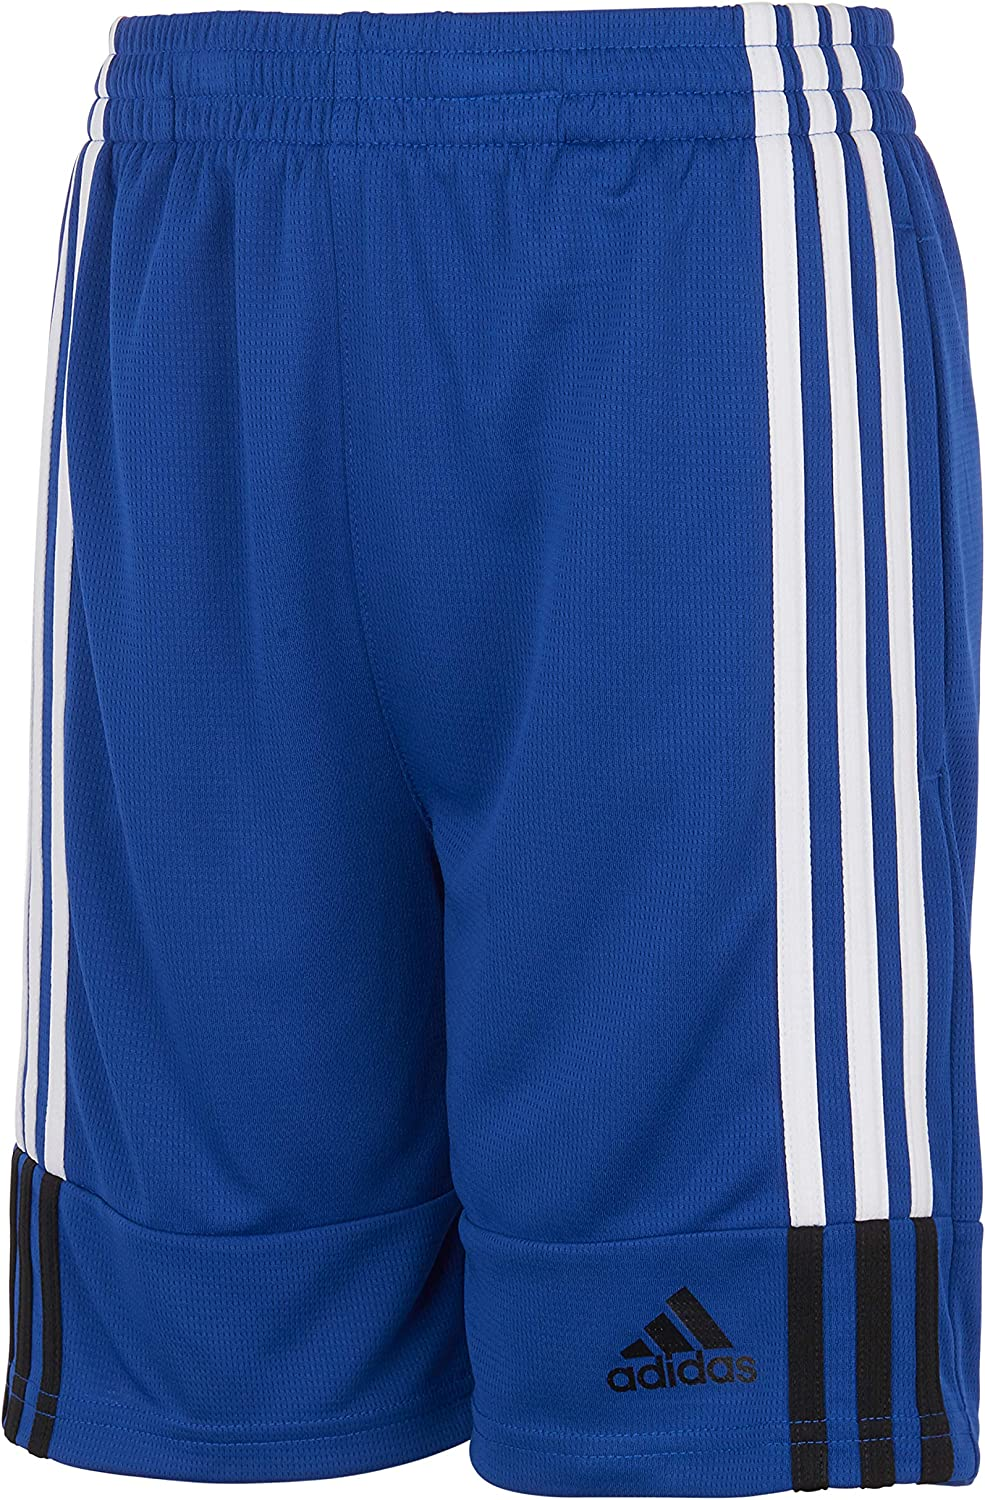 adidas It is very popular boys Clashing 3s Short Cheap mail order specialty store